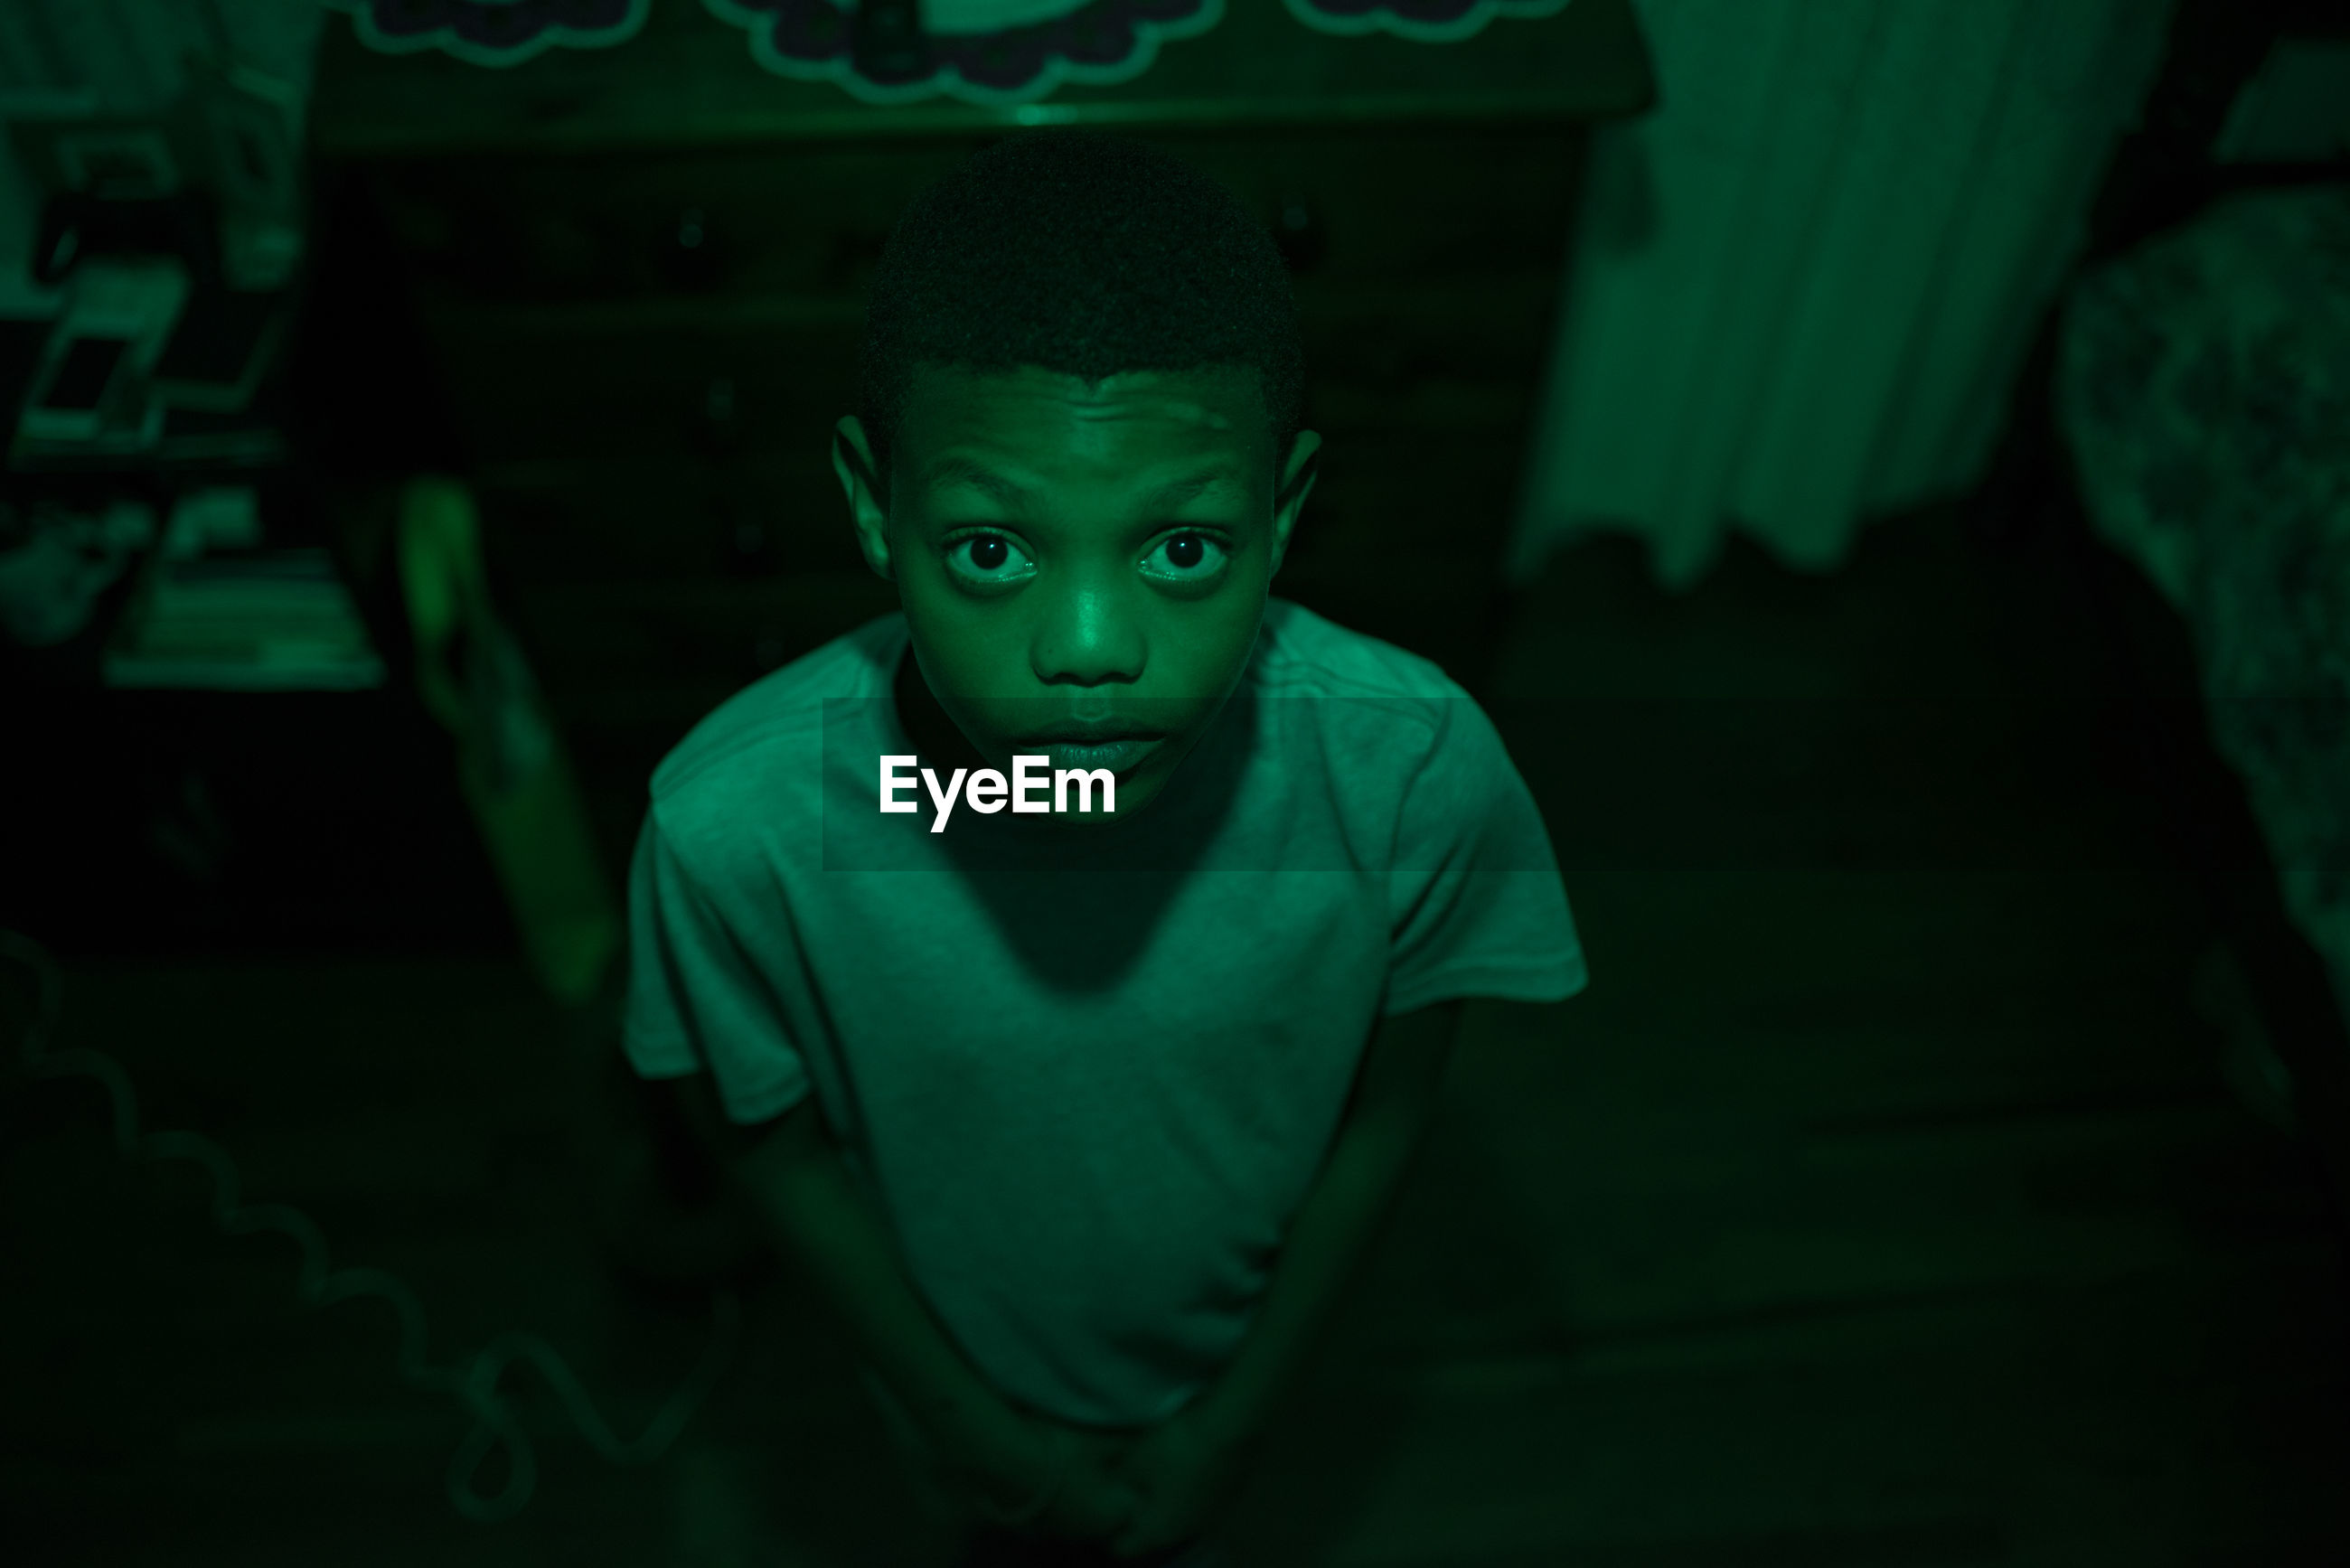 High angle portrait of boy standing in green illuminated room